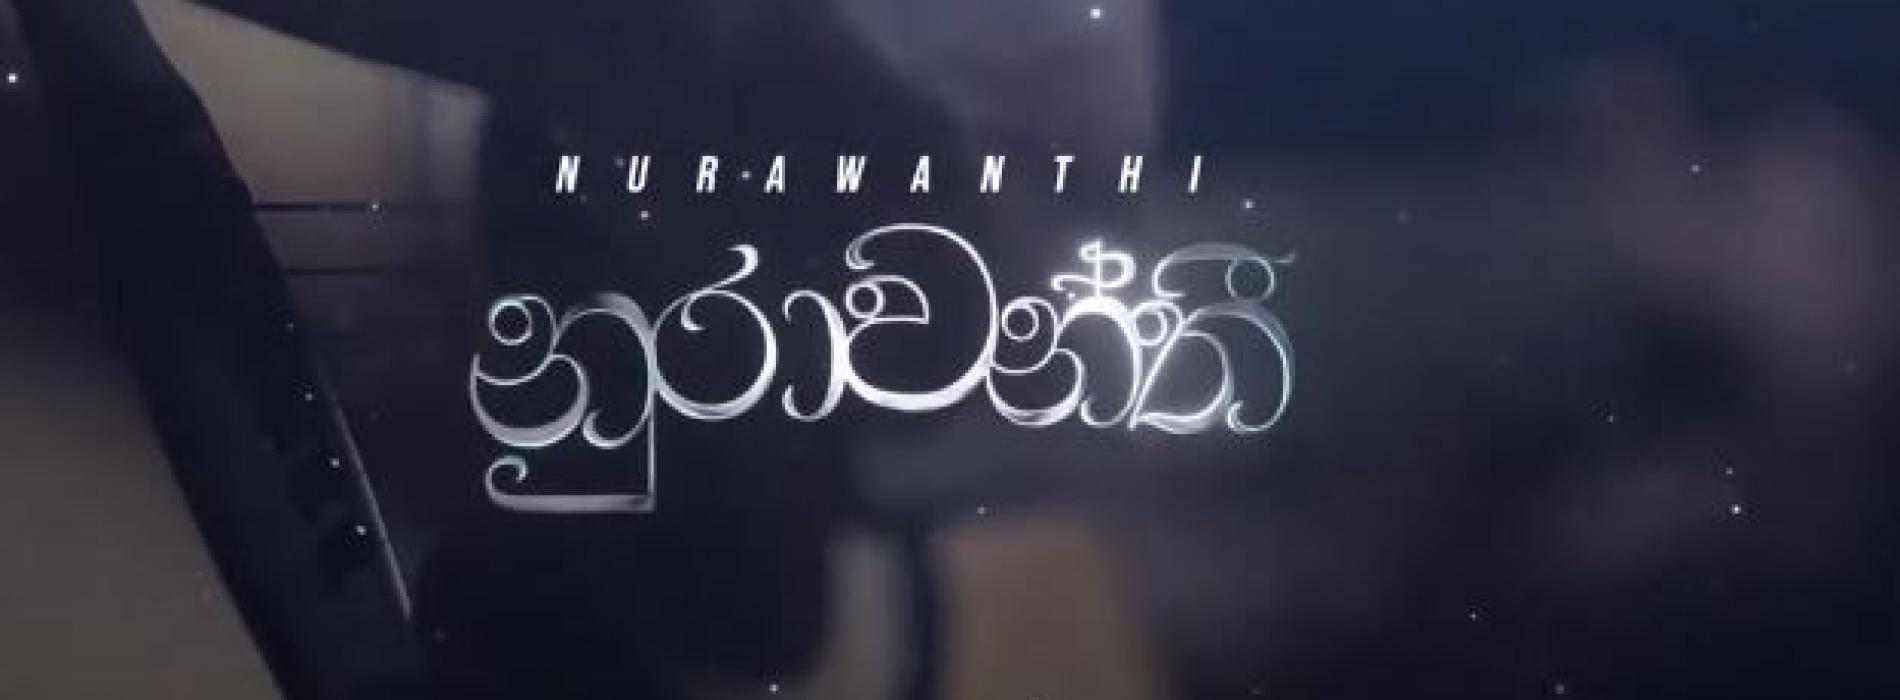 New Music : Mayosha Mihiran – Nurawanthi (නුරාවන්තී)